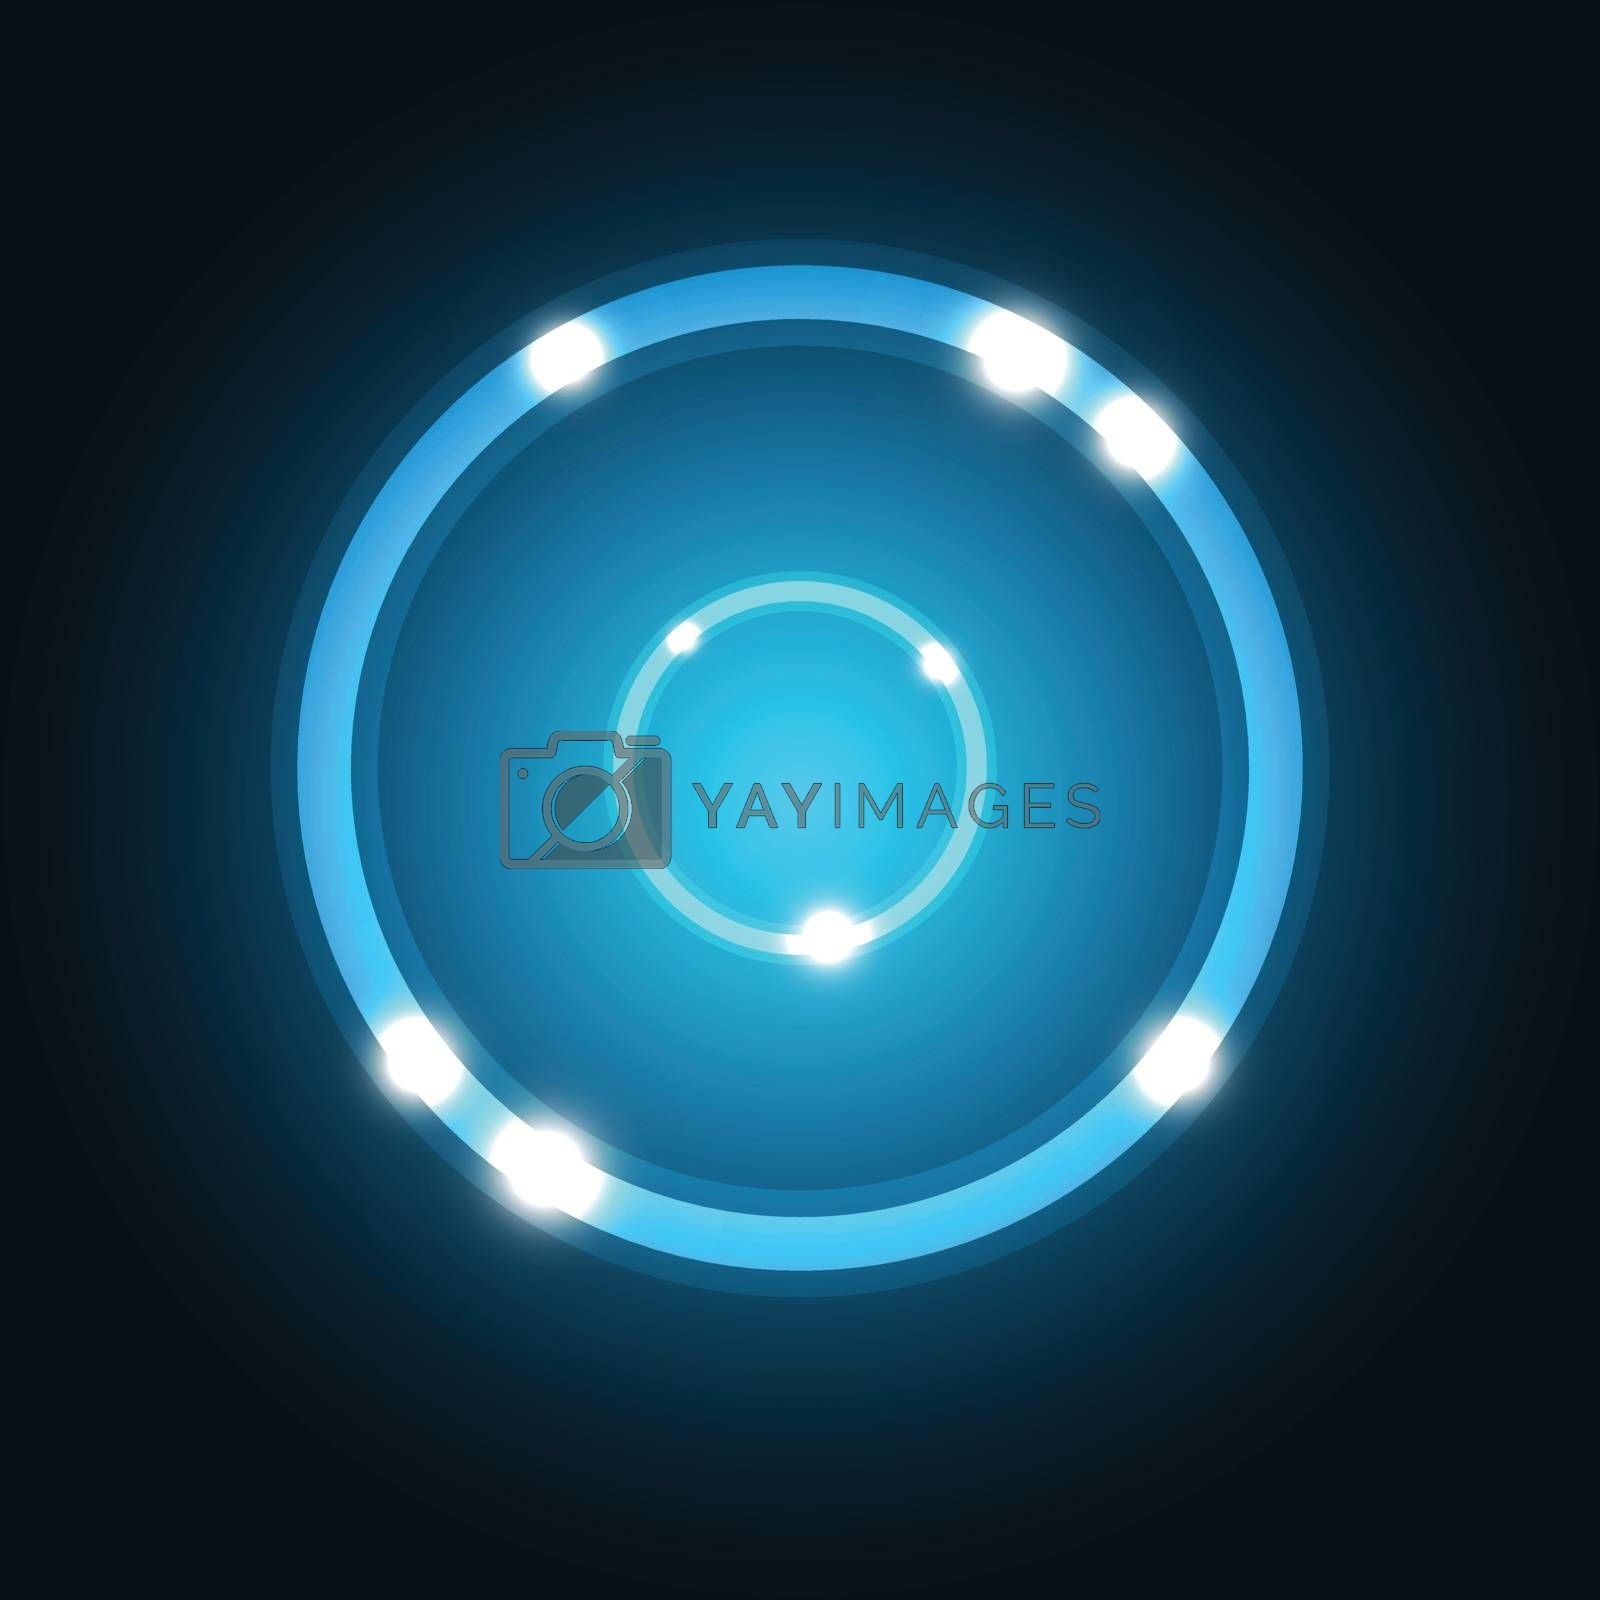 Abstract background with blue circle, stock vector